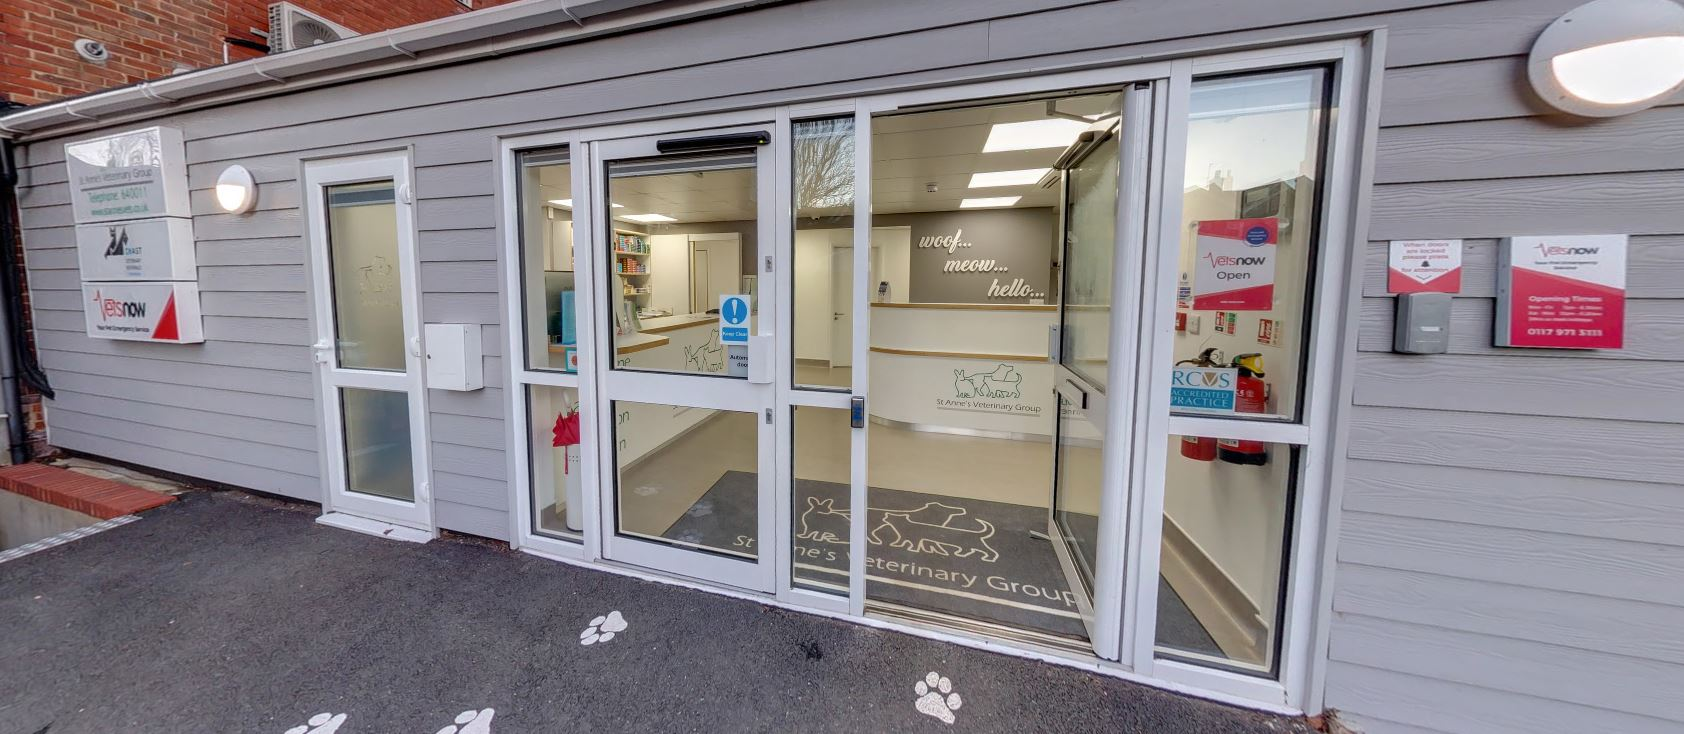 Emergency Vet Eastbourne Open Nights Weekends 24 Hrs Sunday Vets Now